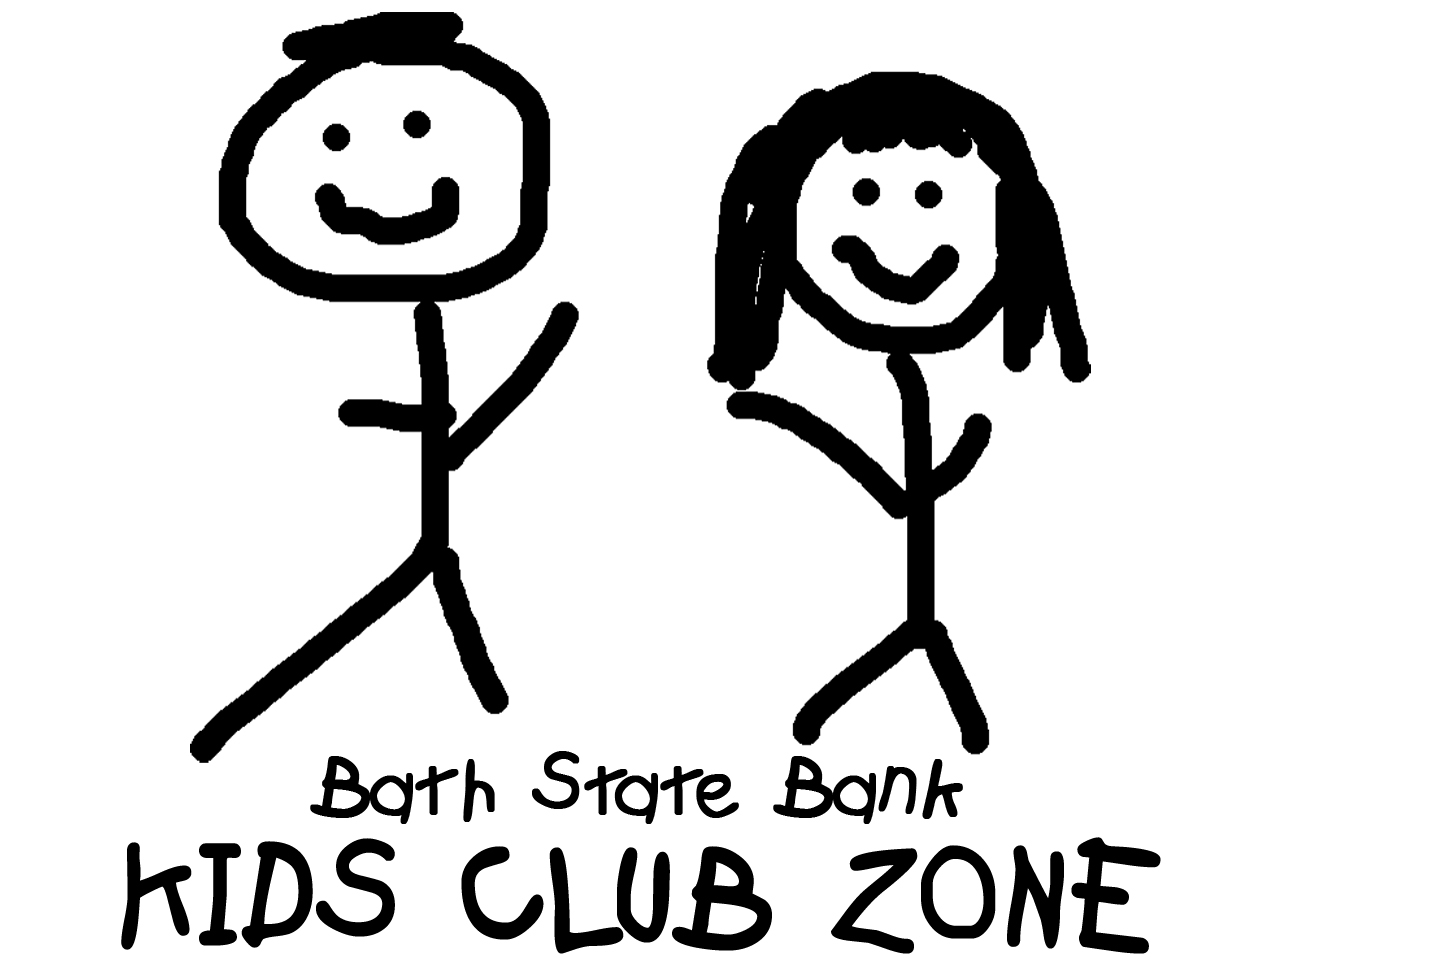 Stick-figure boy and girl